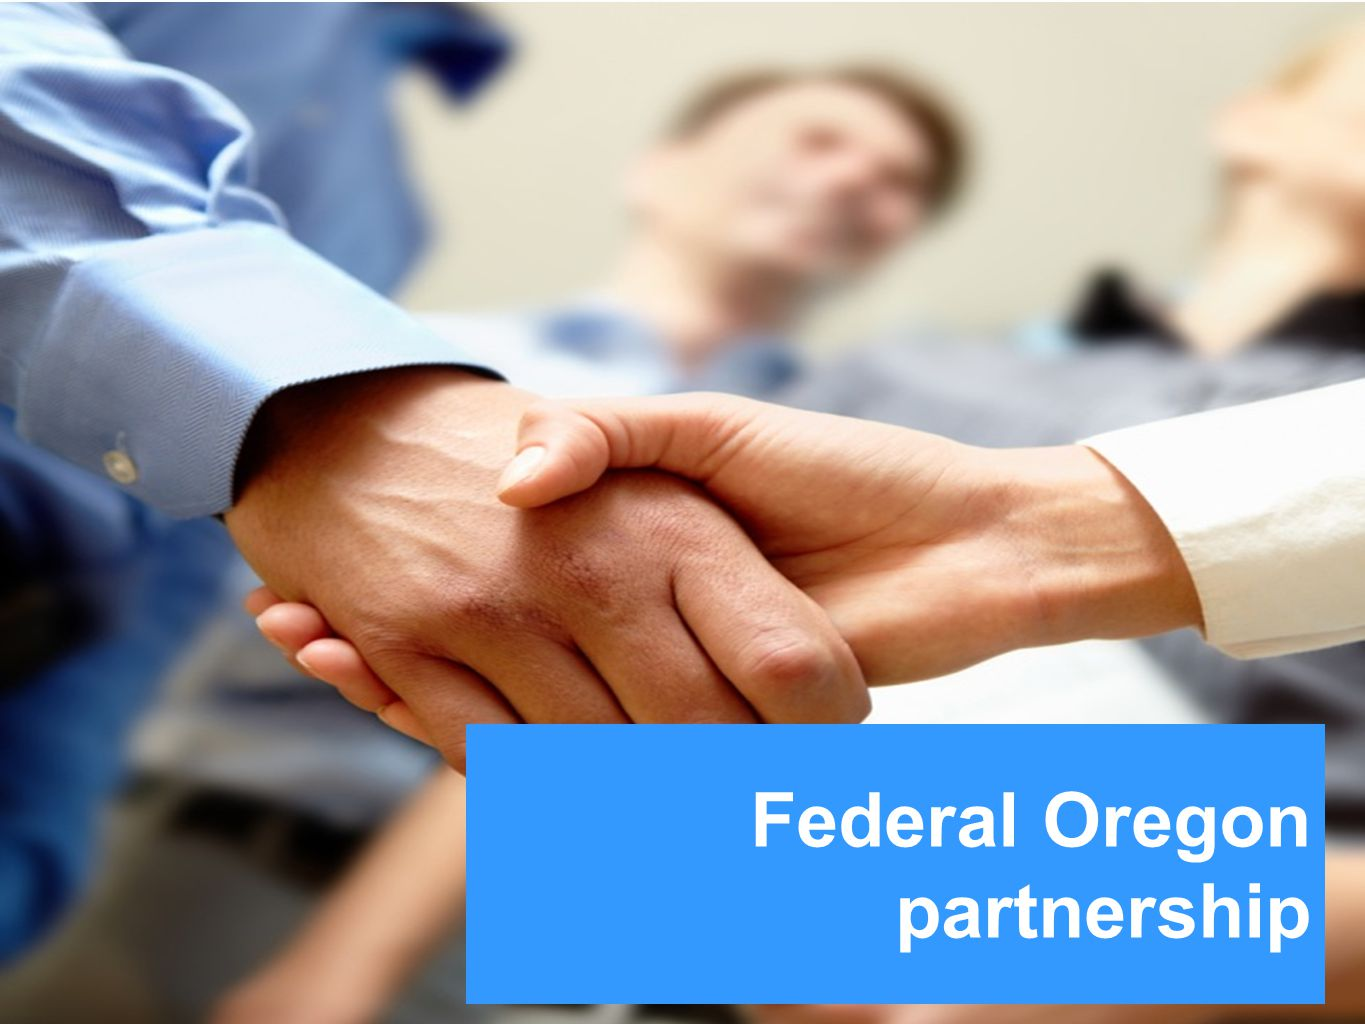 Federal Oregon partnership